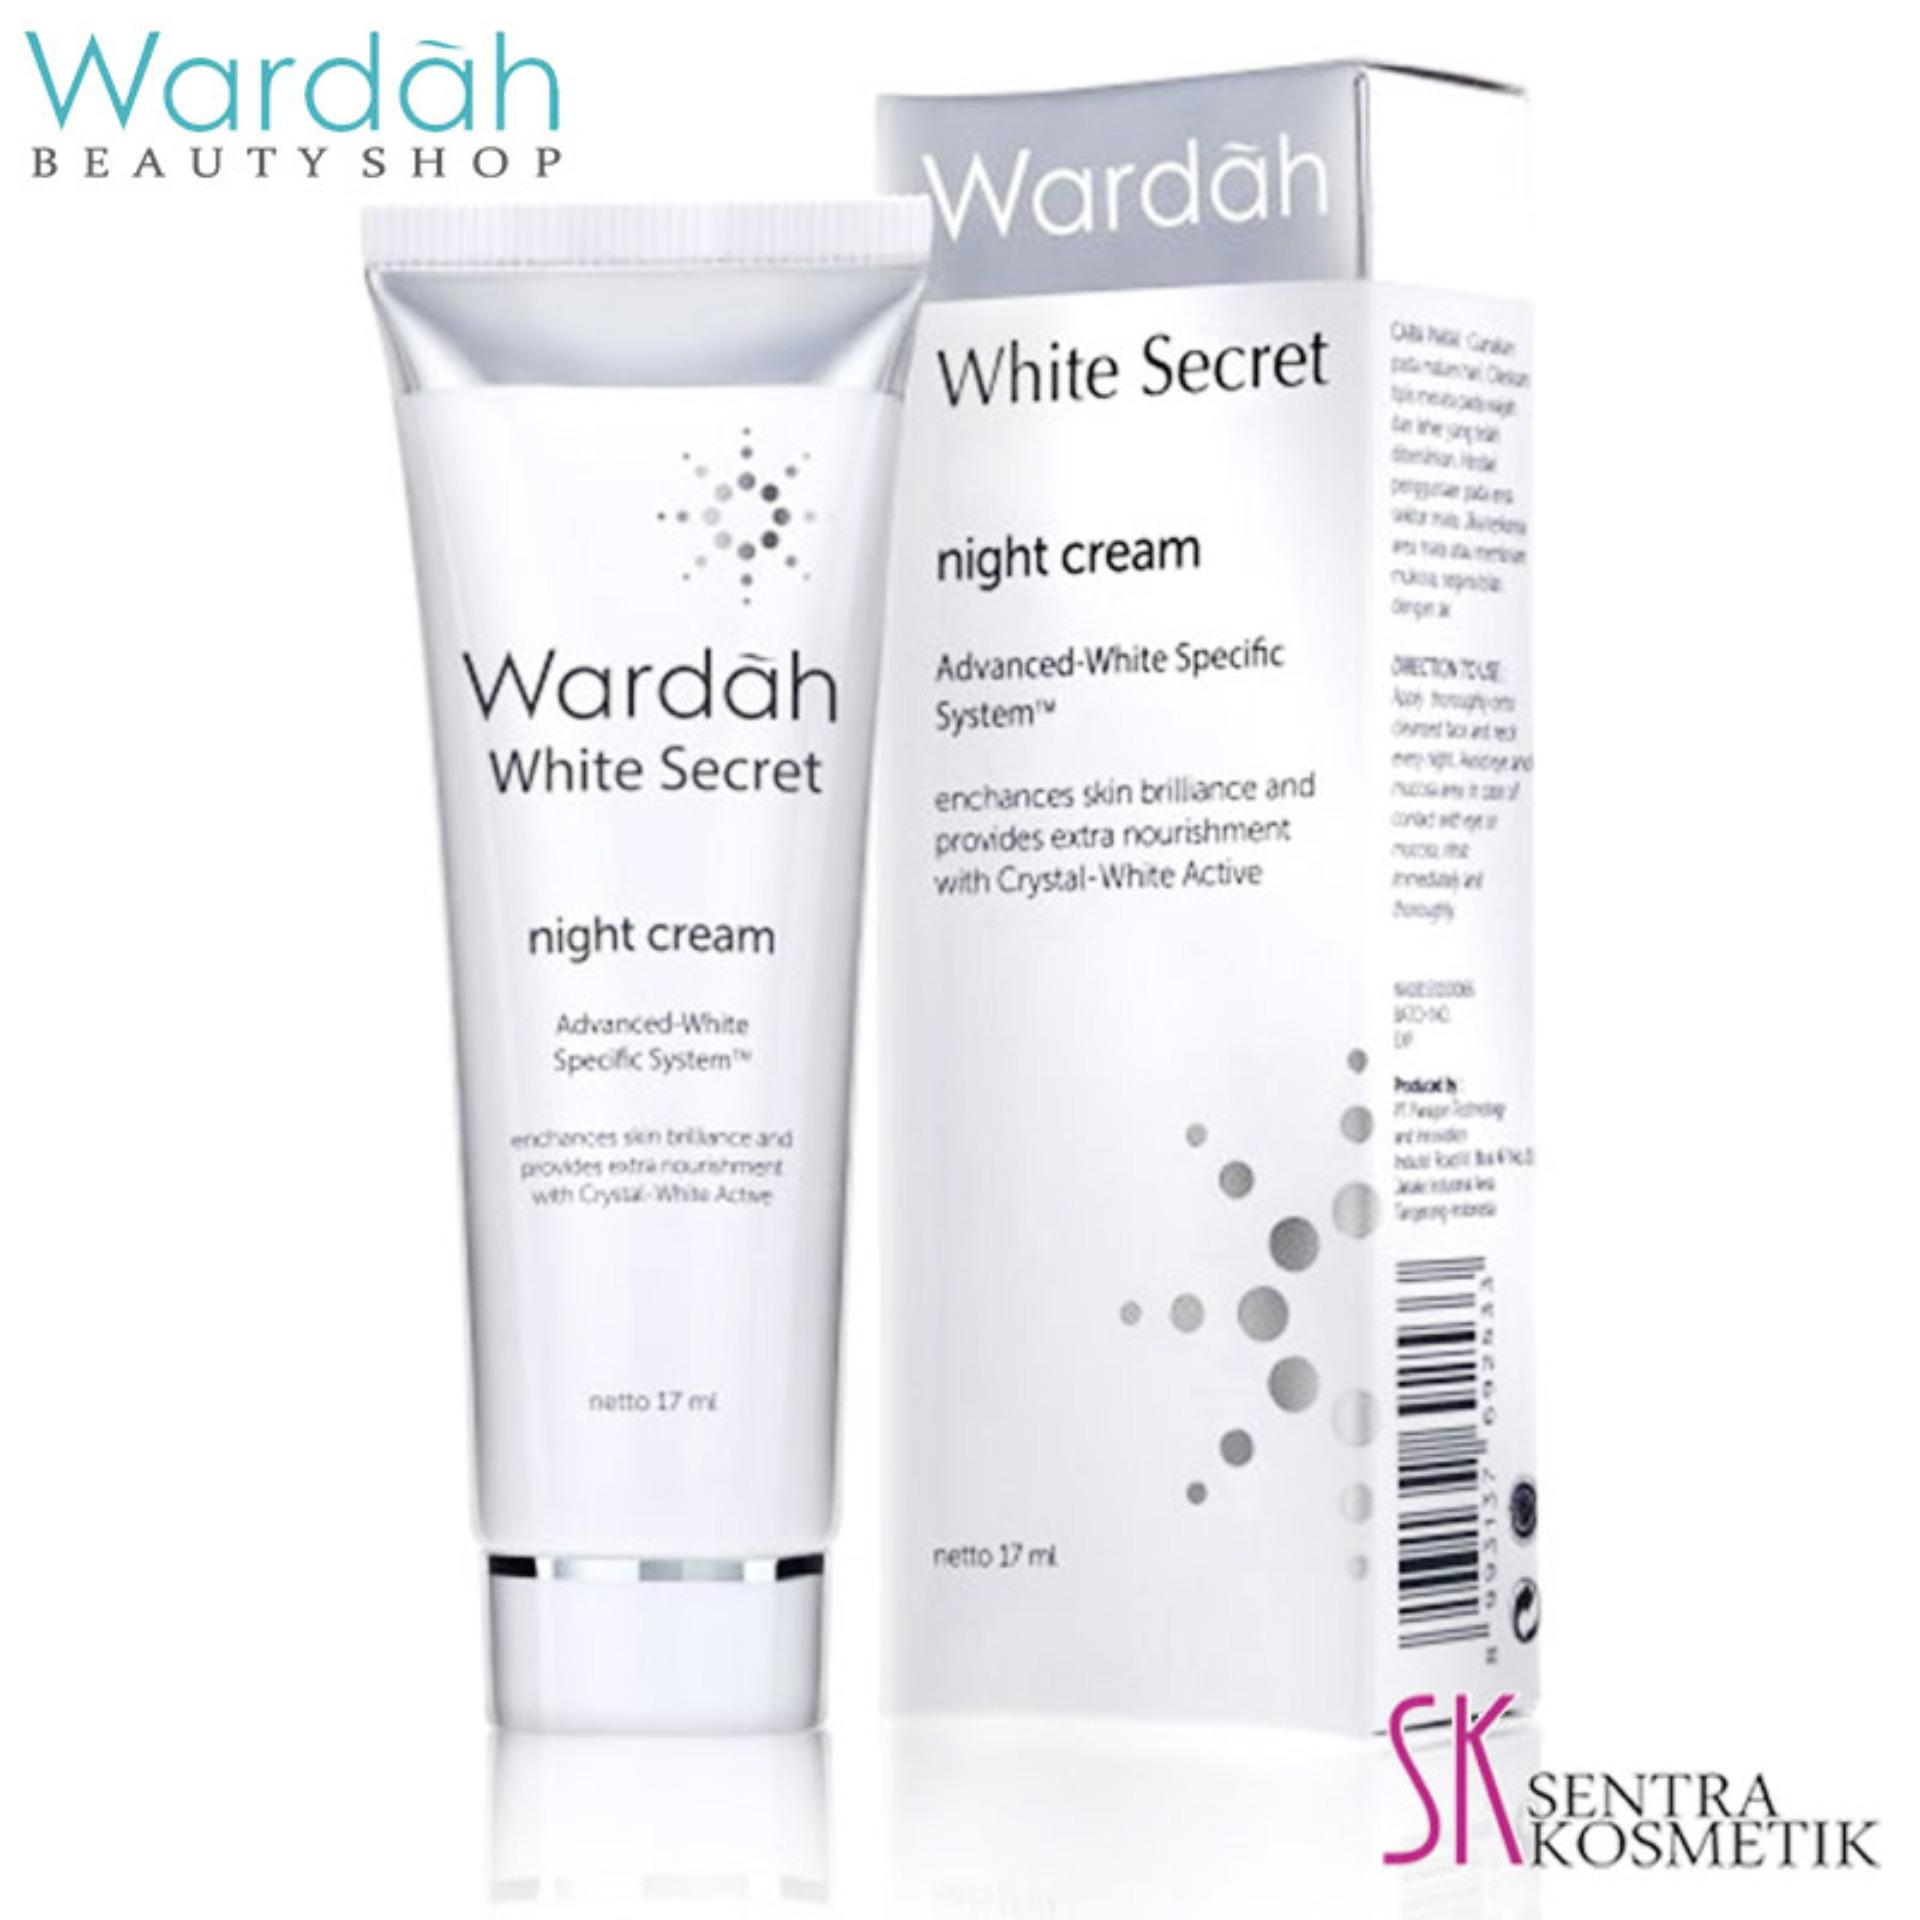 Wardah White Secret Night Cream - 17ml